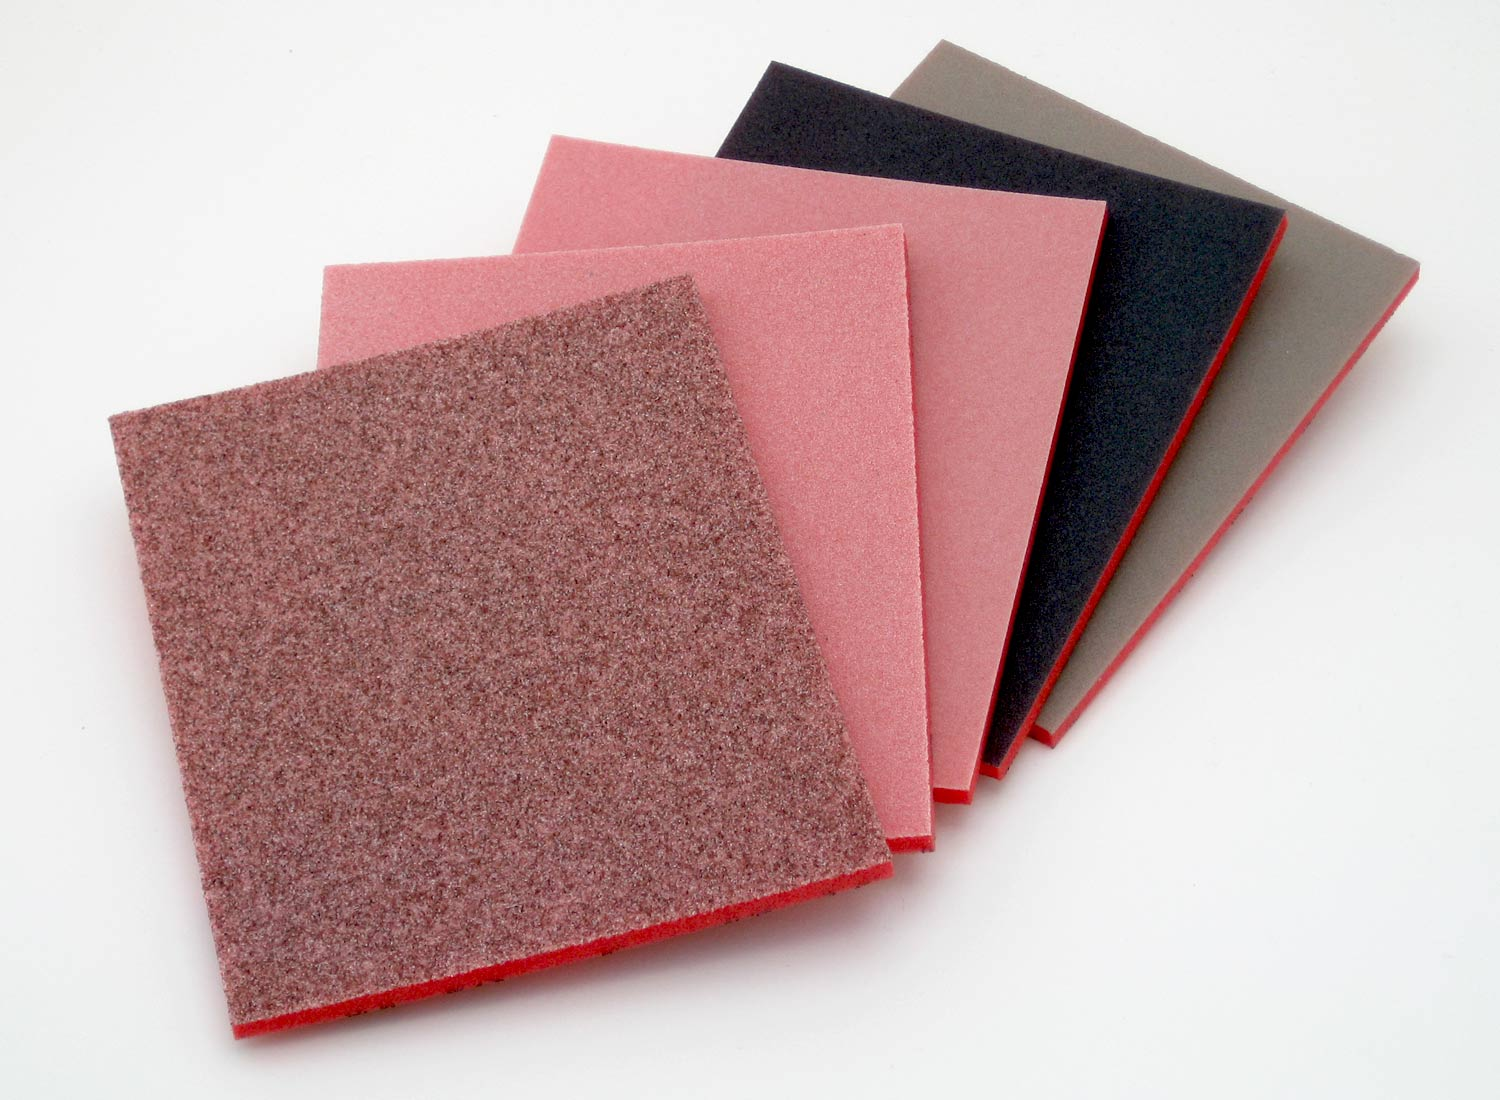 abrasives-home-img